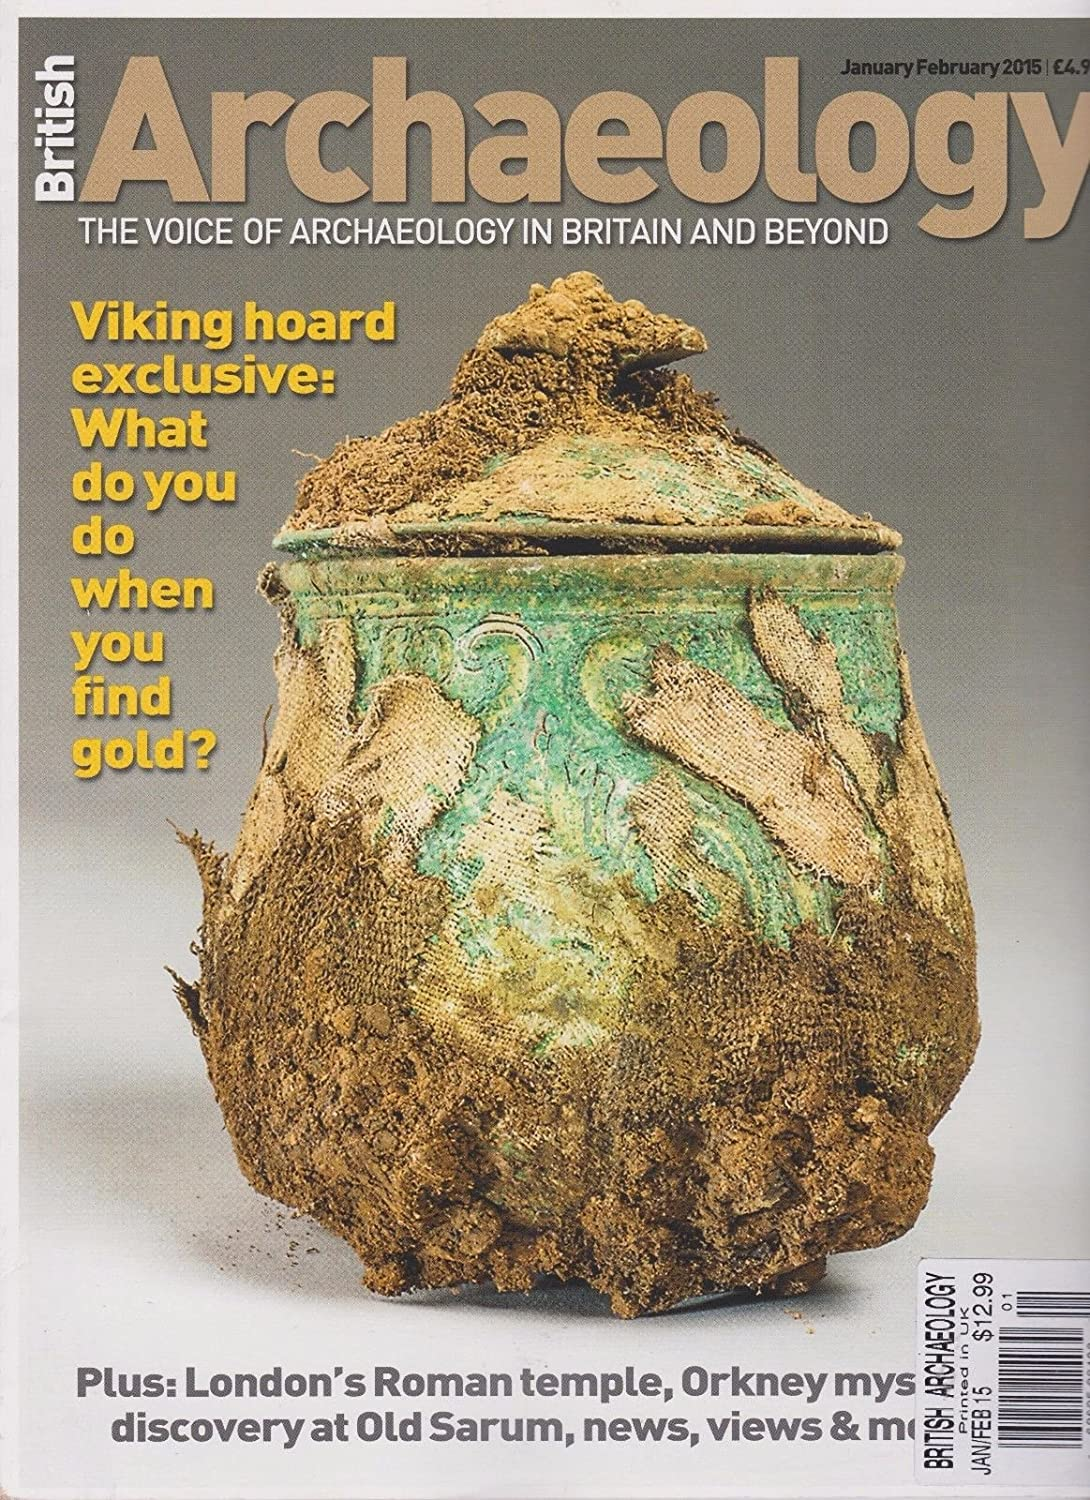 BRITISH ARCHAEOLOGY MAGAZINE JAN/FEB 2015, THE VOICE OF ARCHAEOLOGY IN BRITAIN.